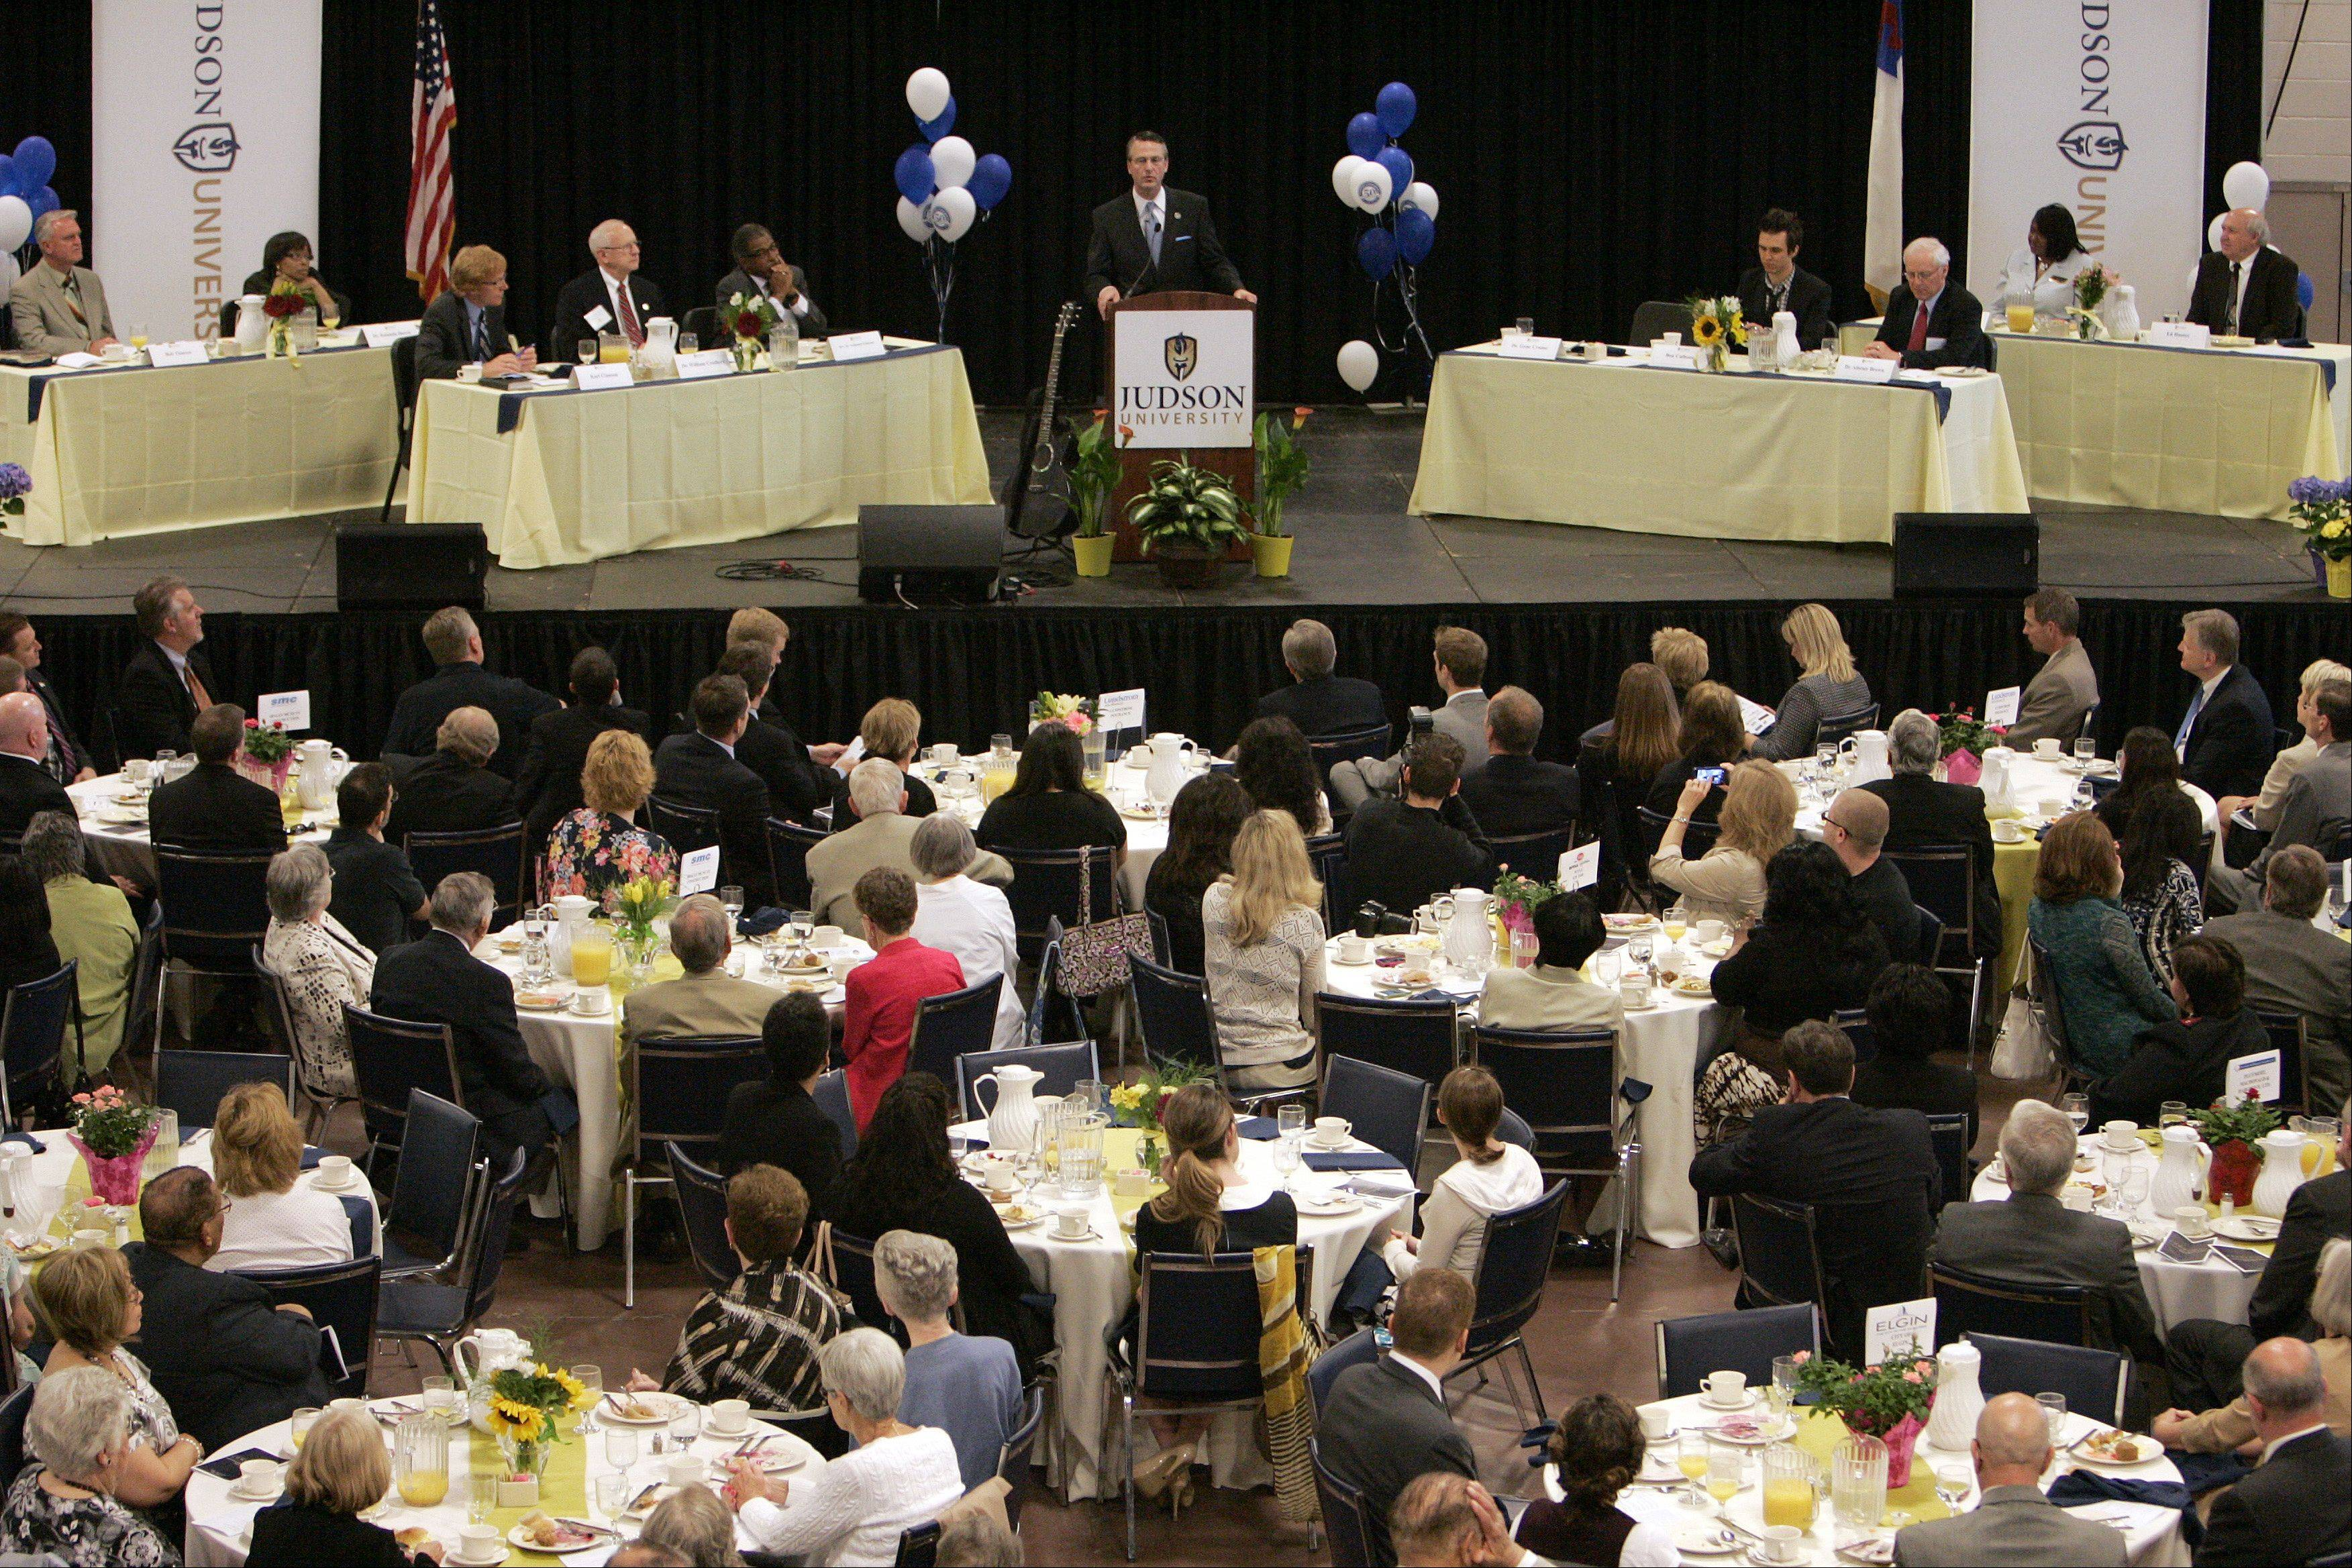 Judson University President Gene Crume Jr. speaks during Wednesday's prayer breakfast in Elgin.